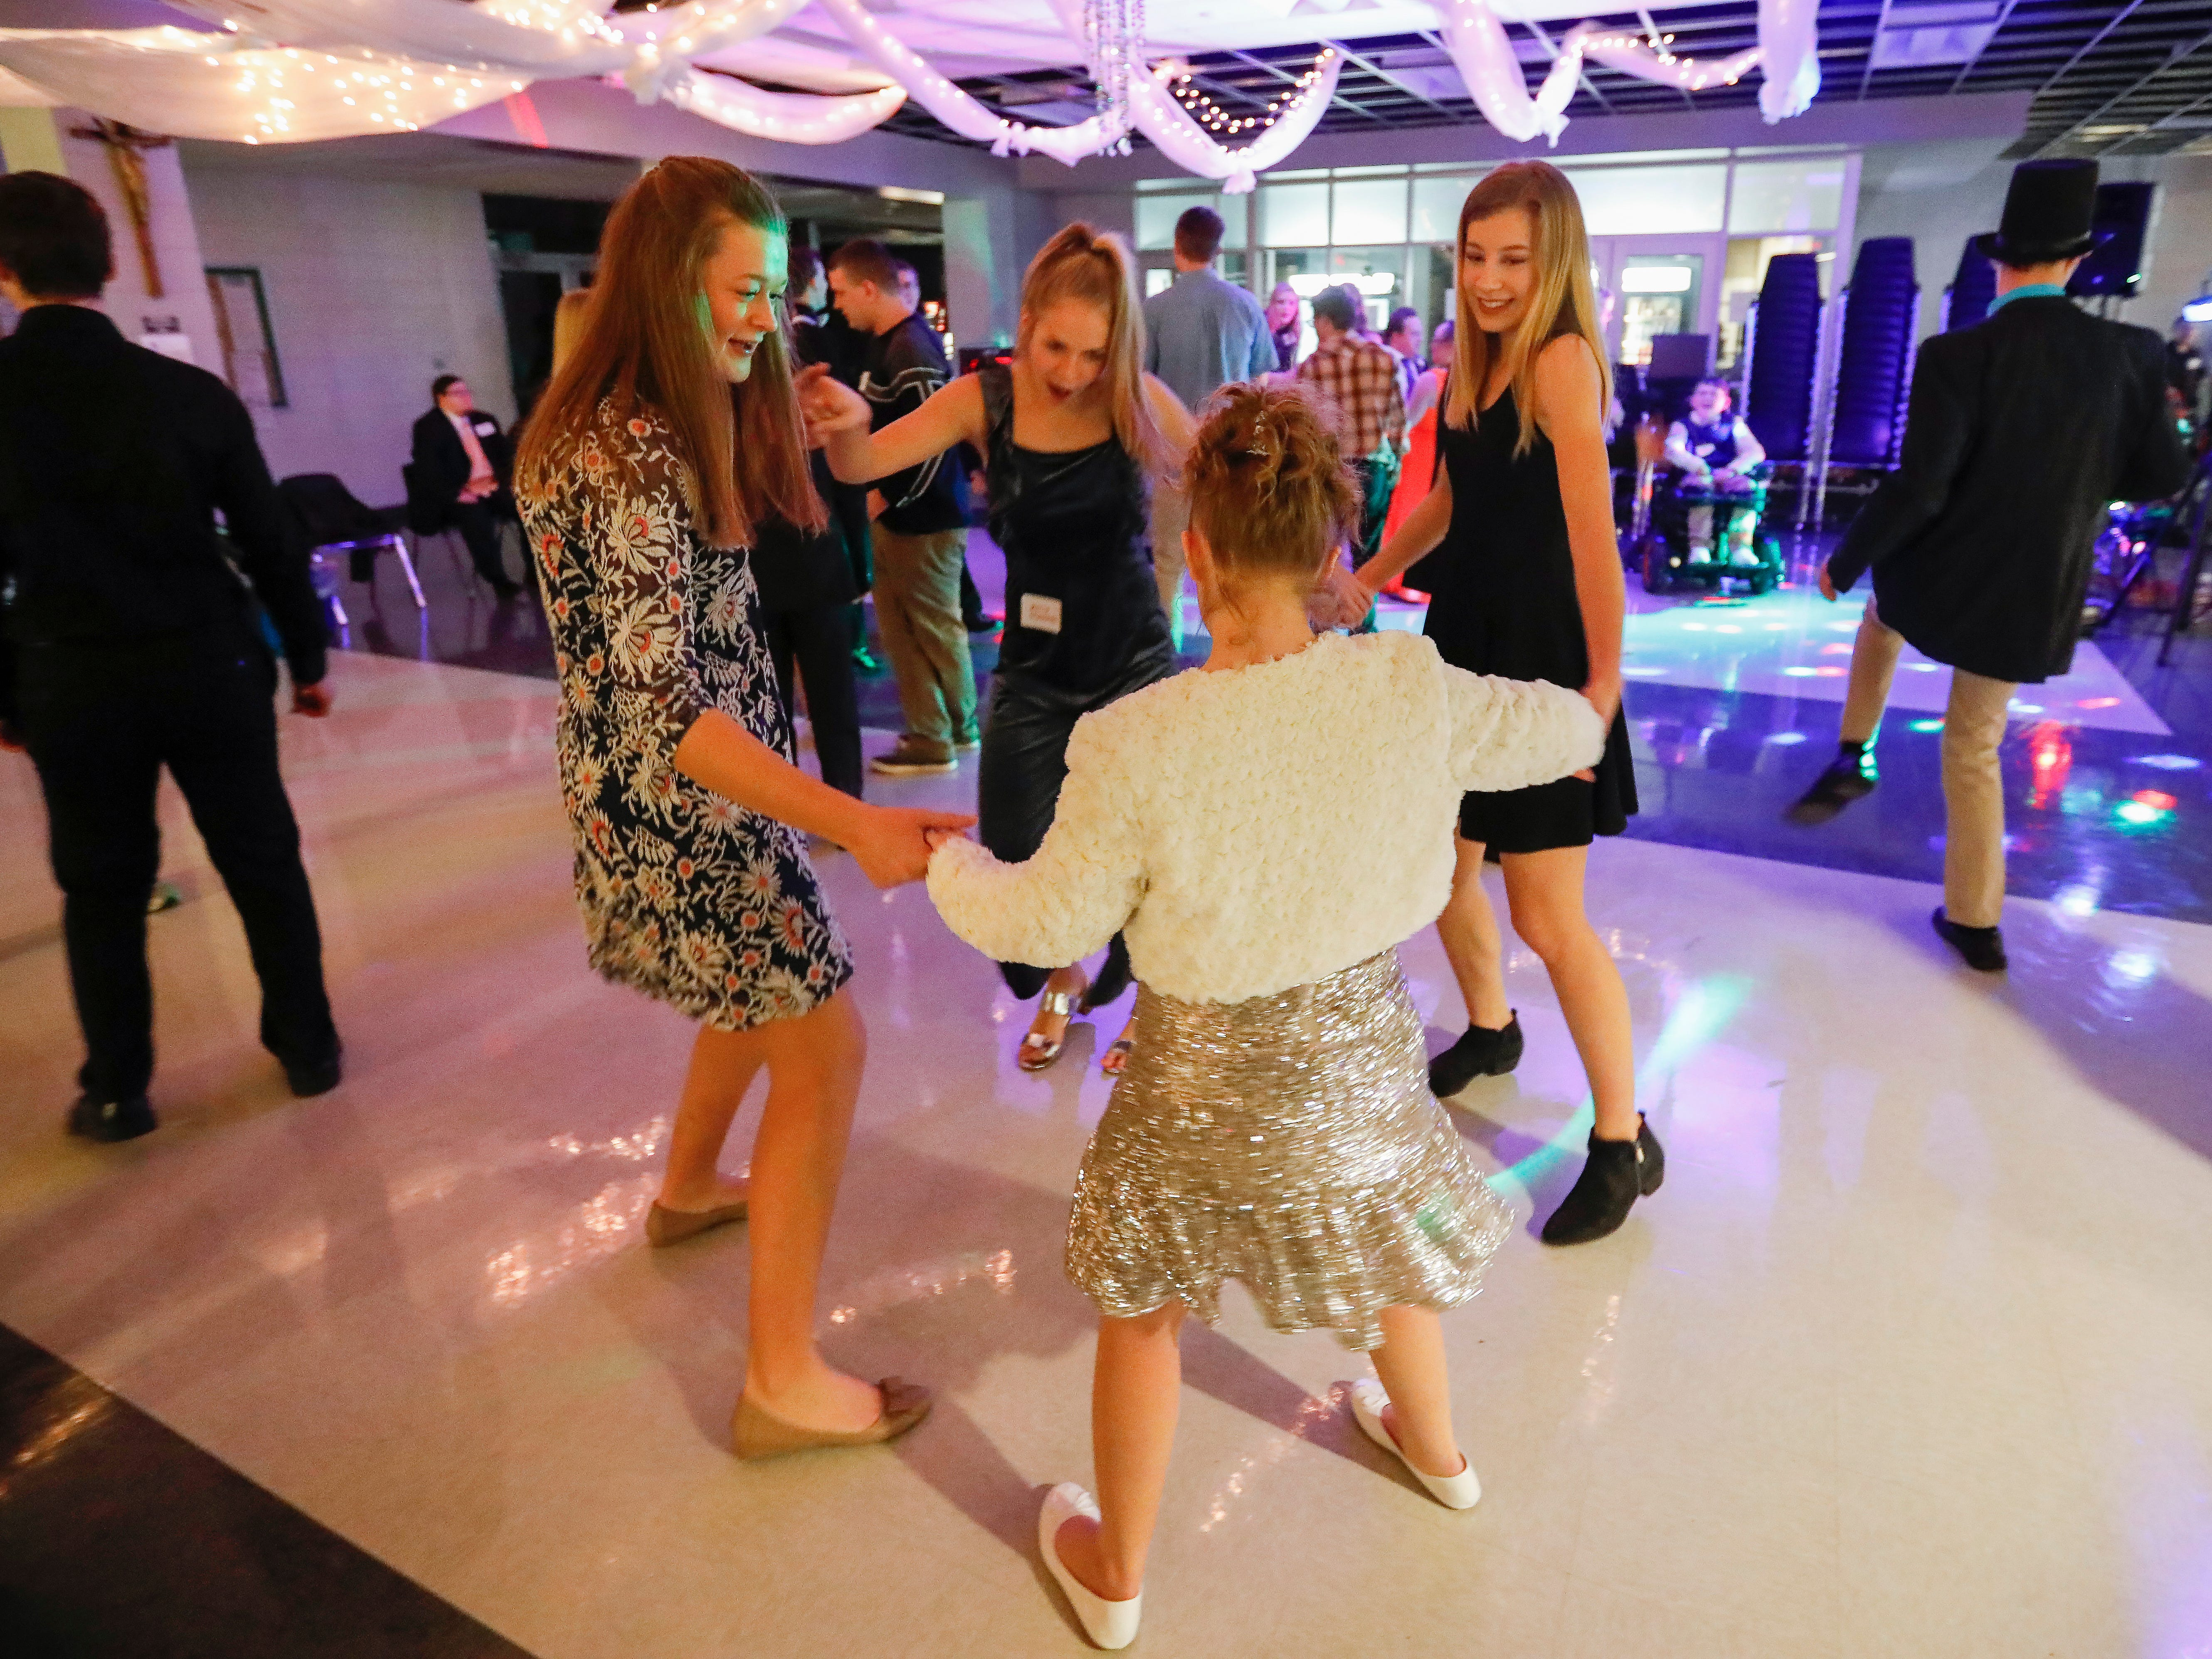 Scenes from the Camp Barnabas Snow Ball at Springfield Catholic High School on Saturday, Jan. 26, 2019.